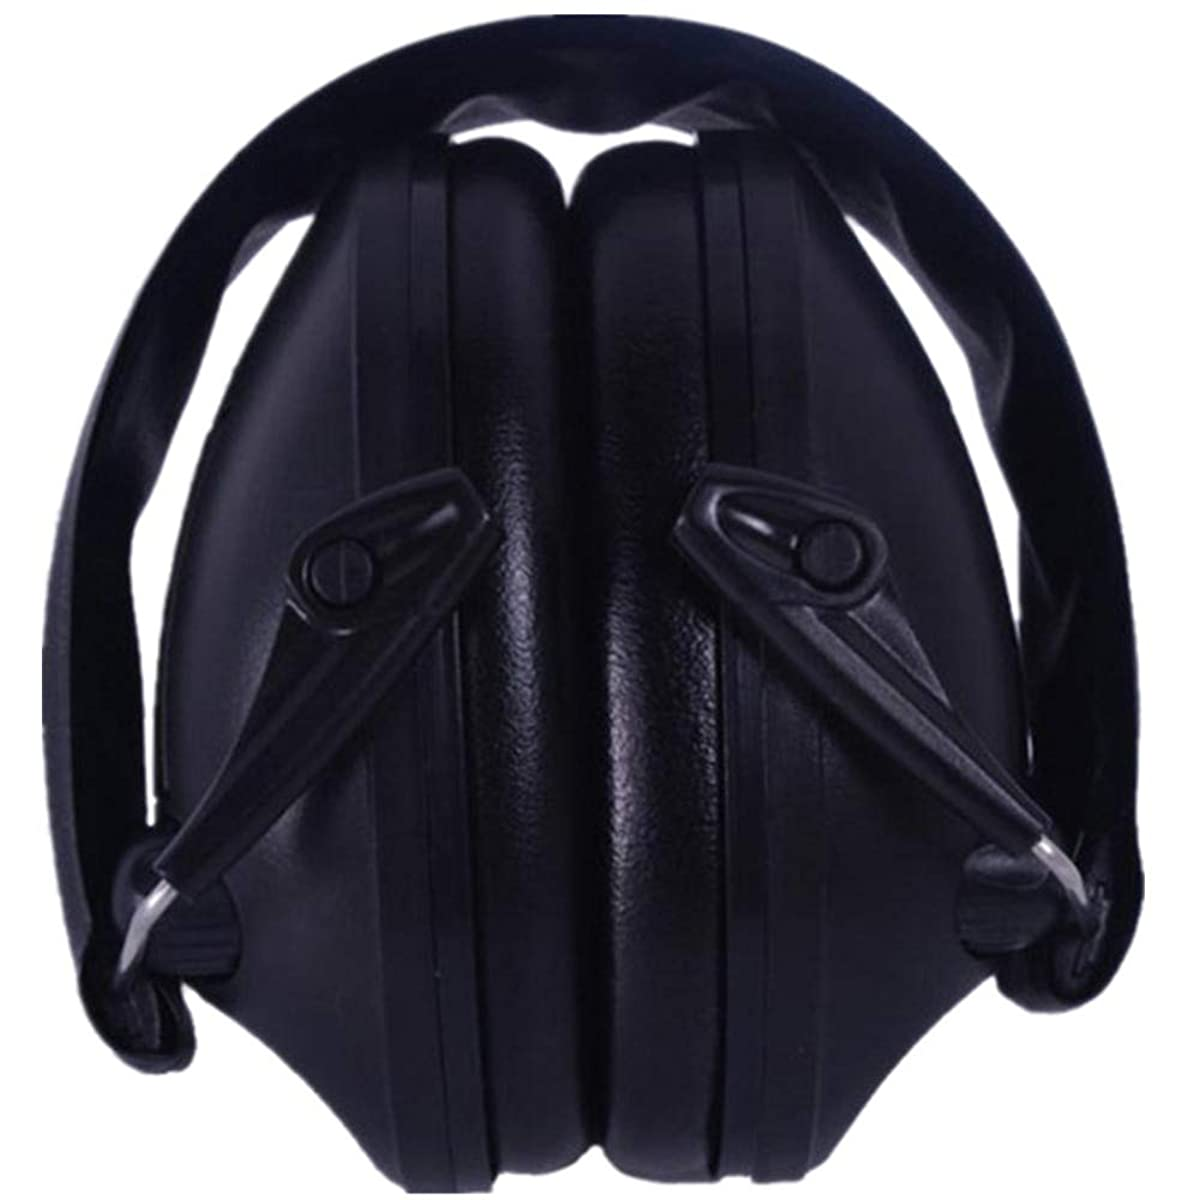 Snug Noise Cancelling Headphones Noise Reduction Soundproof Prevention Ear Muffs, Shooters Hearing Protection Ear Muffs, Adjustable Headset, Noise Cancelling Headphones, Ear Defenders Fits Adults to